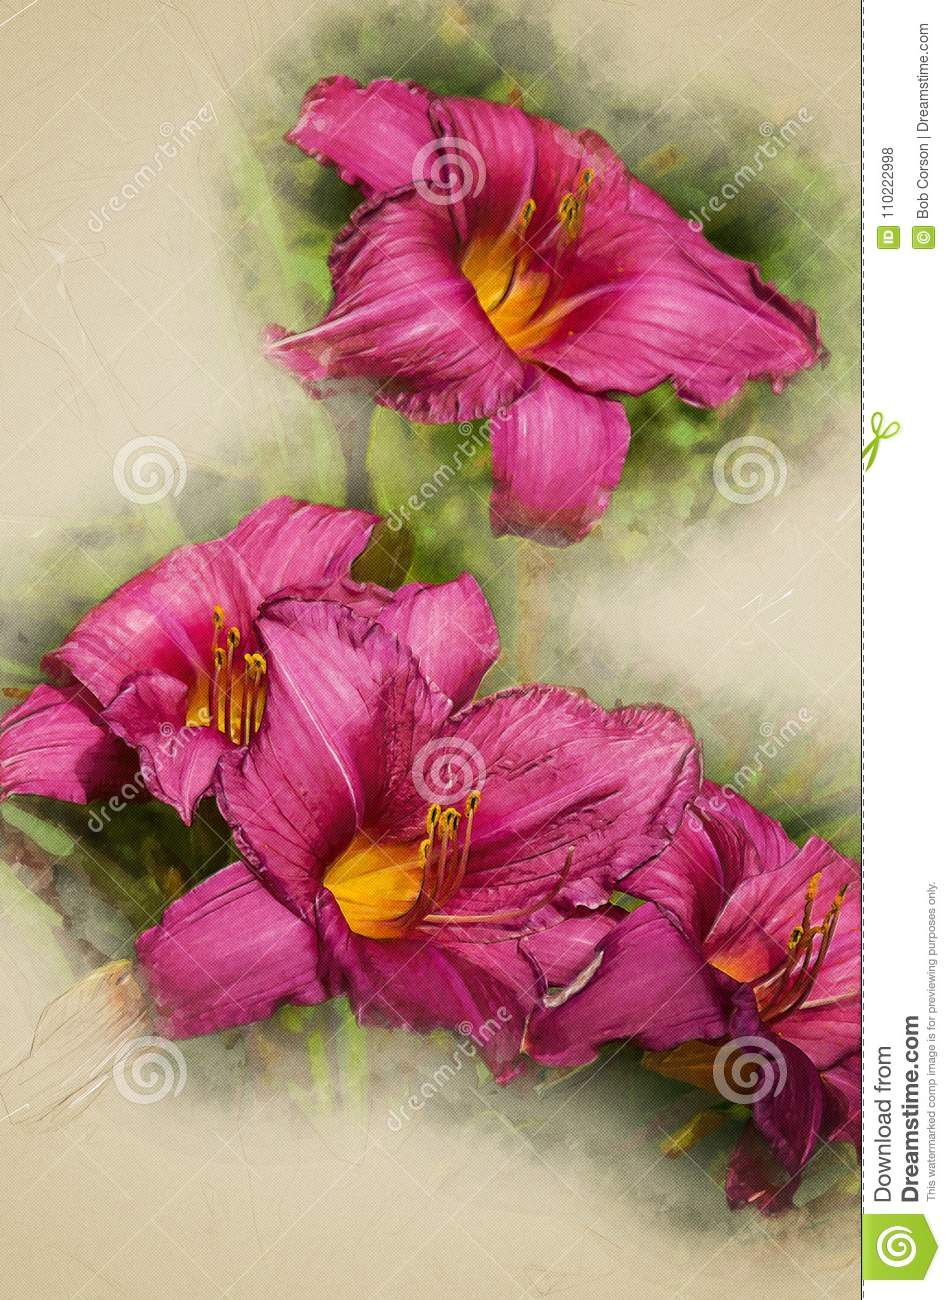 Purple Stella Doro Day Lily Flowers Stock Photo Image Of Bedding